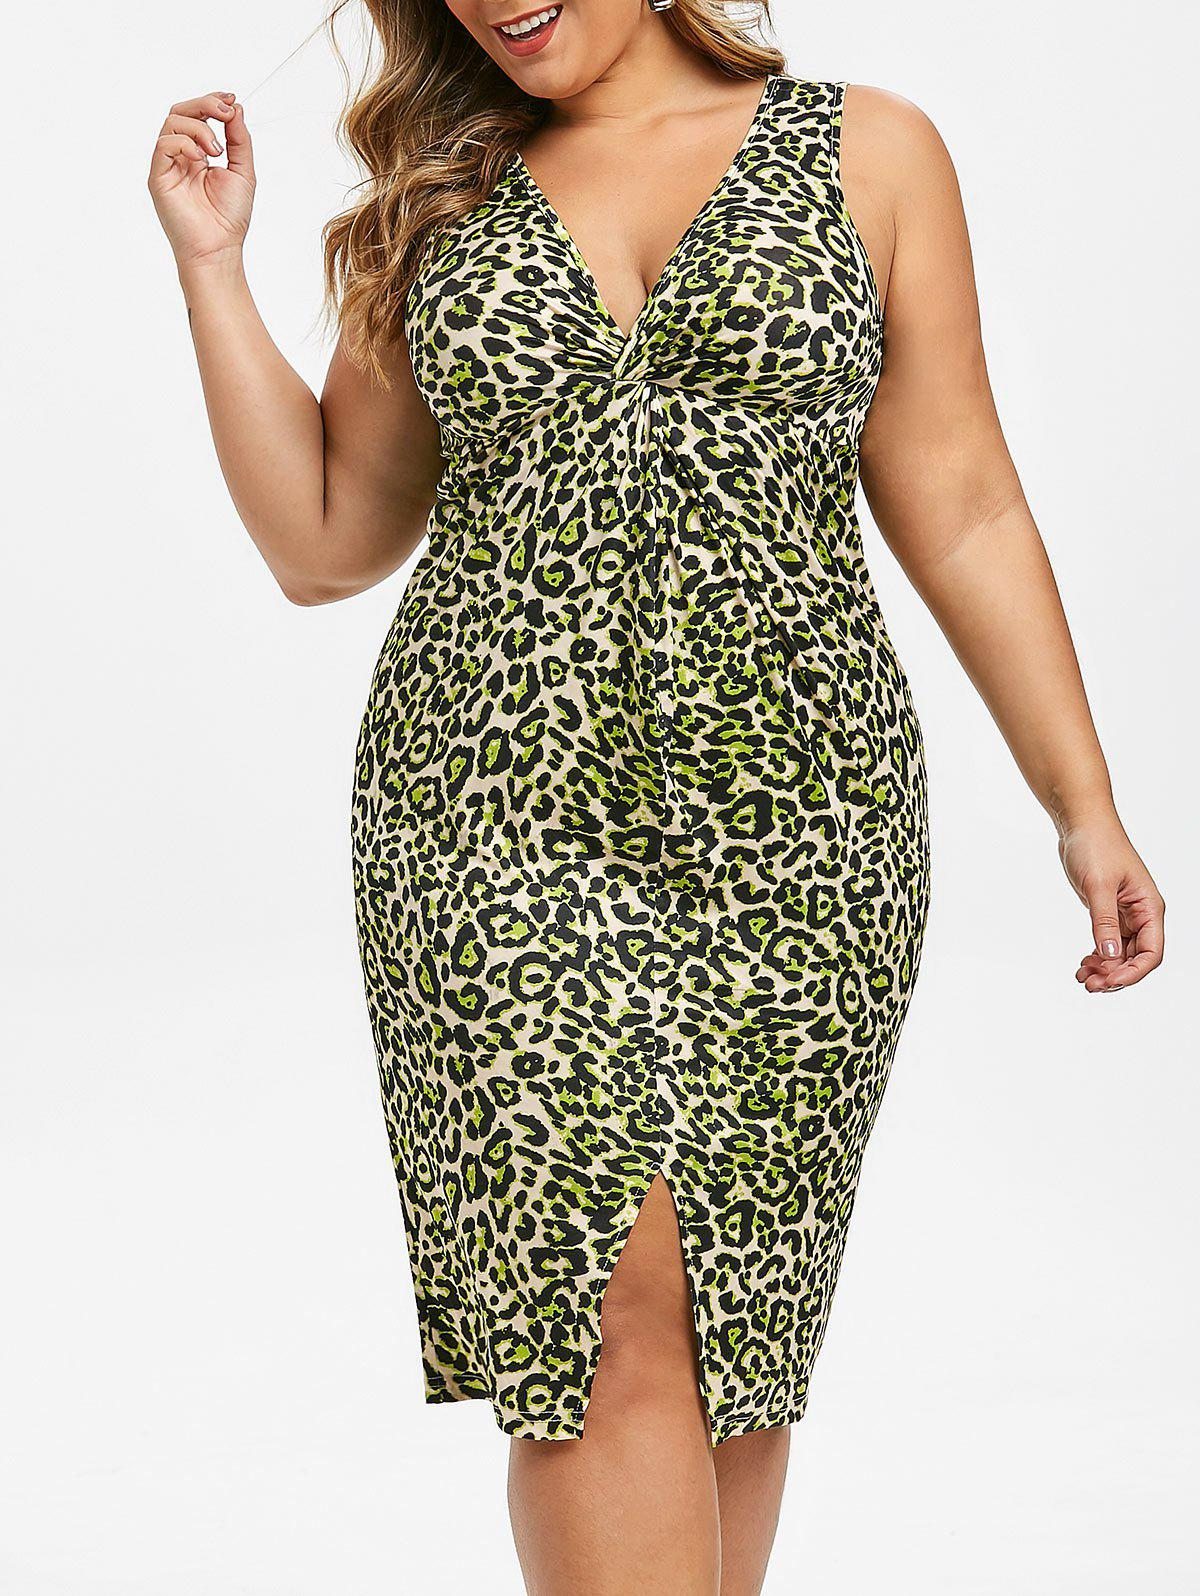 Chic Plus Size Plunge Leopard Print Twist Bodycon Dress